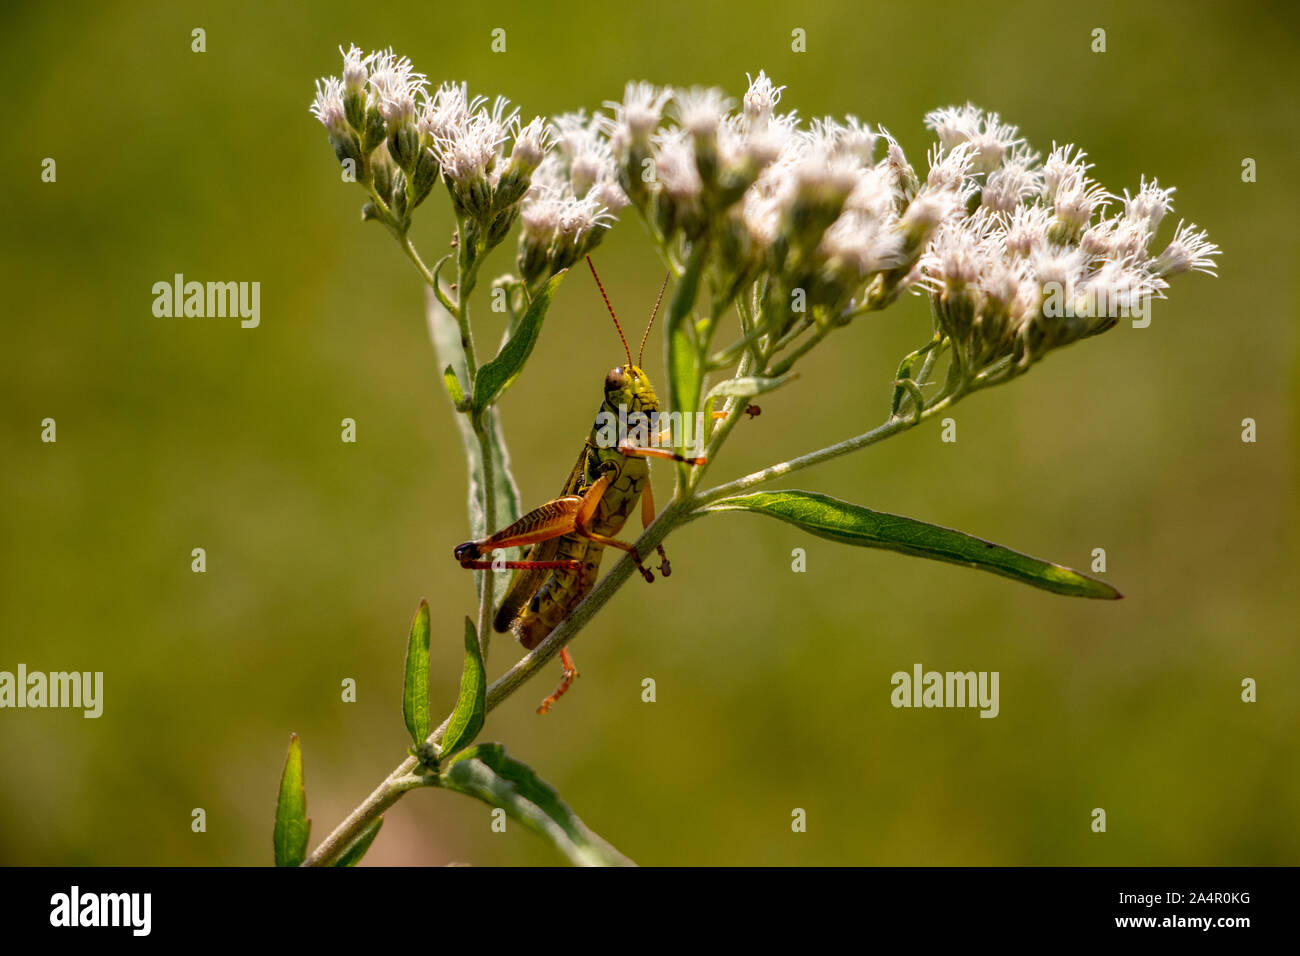 Grasshopper relaxing on a flower Stock Photo